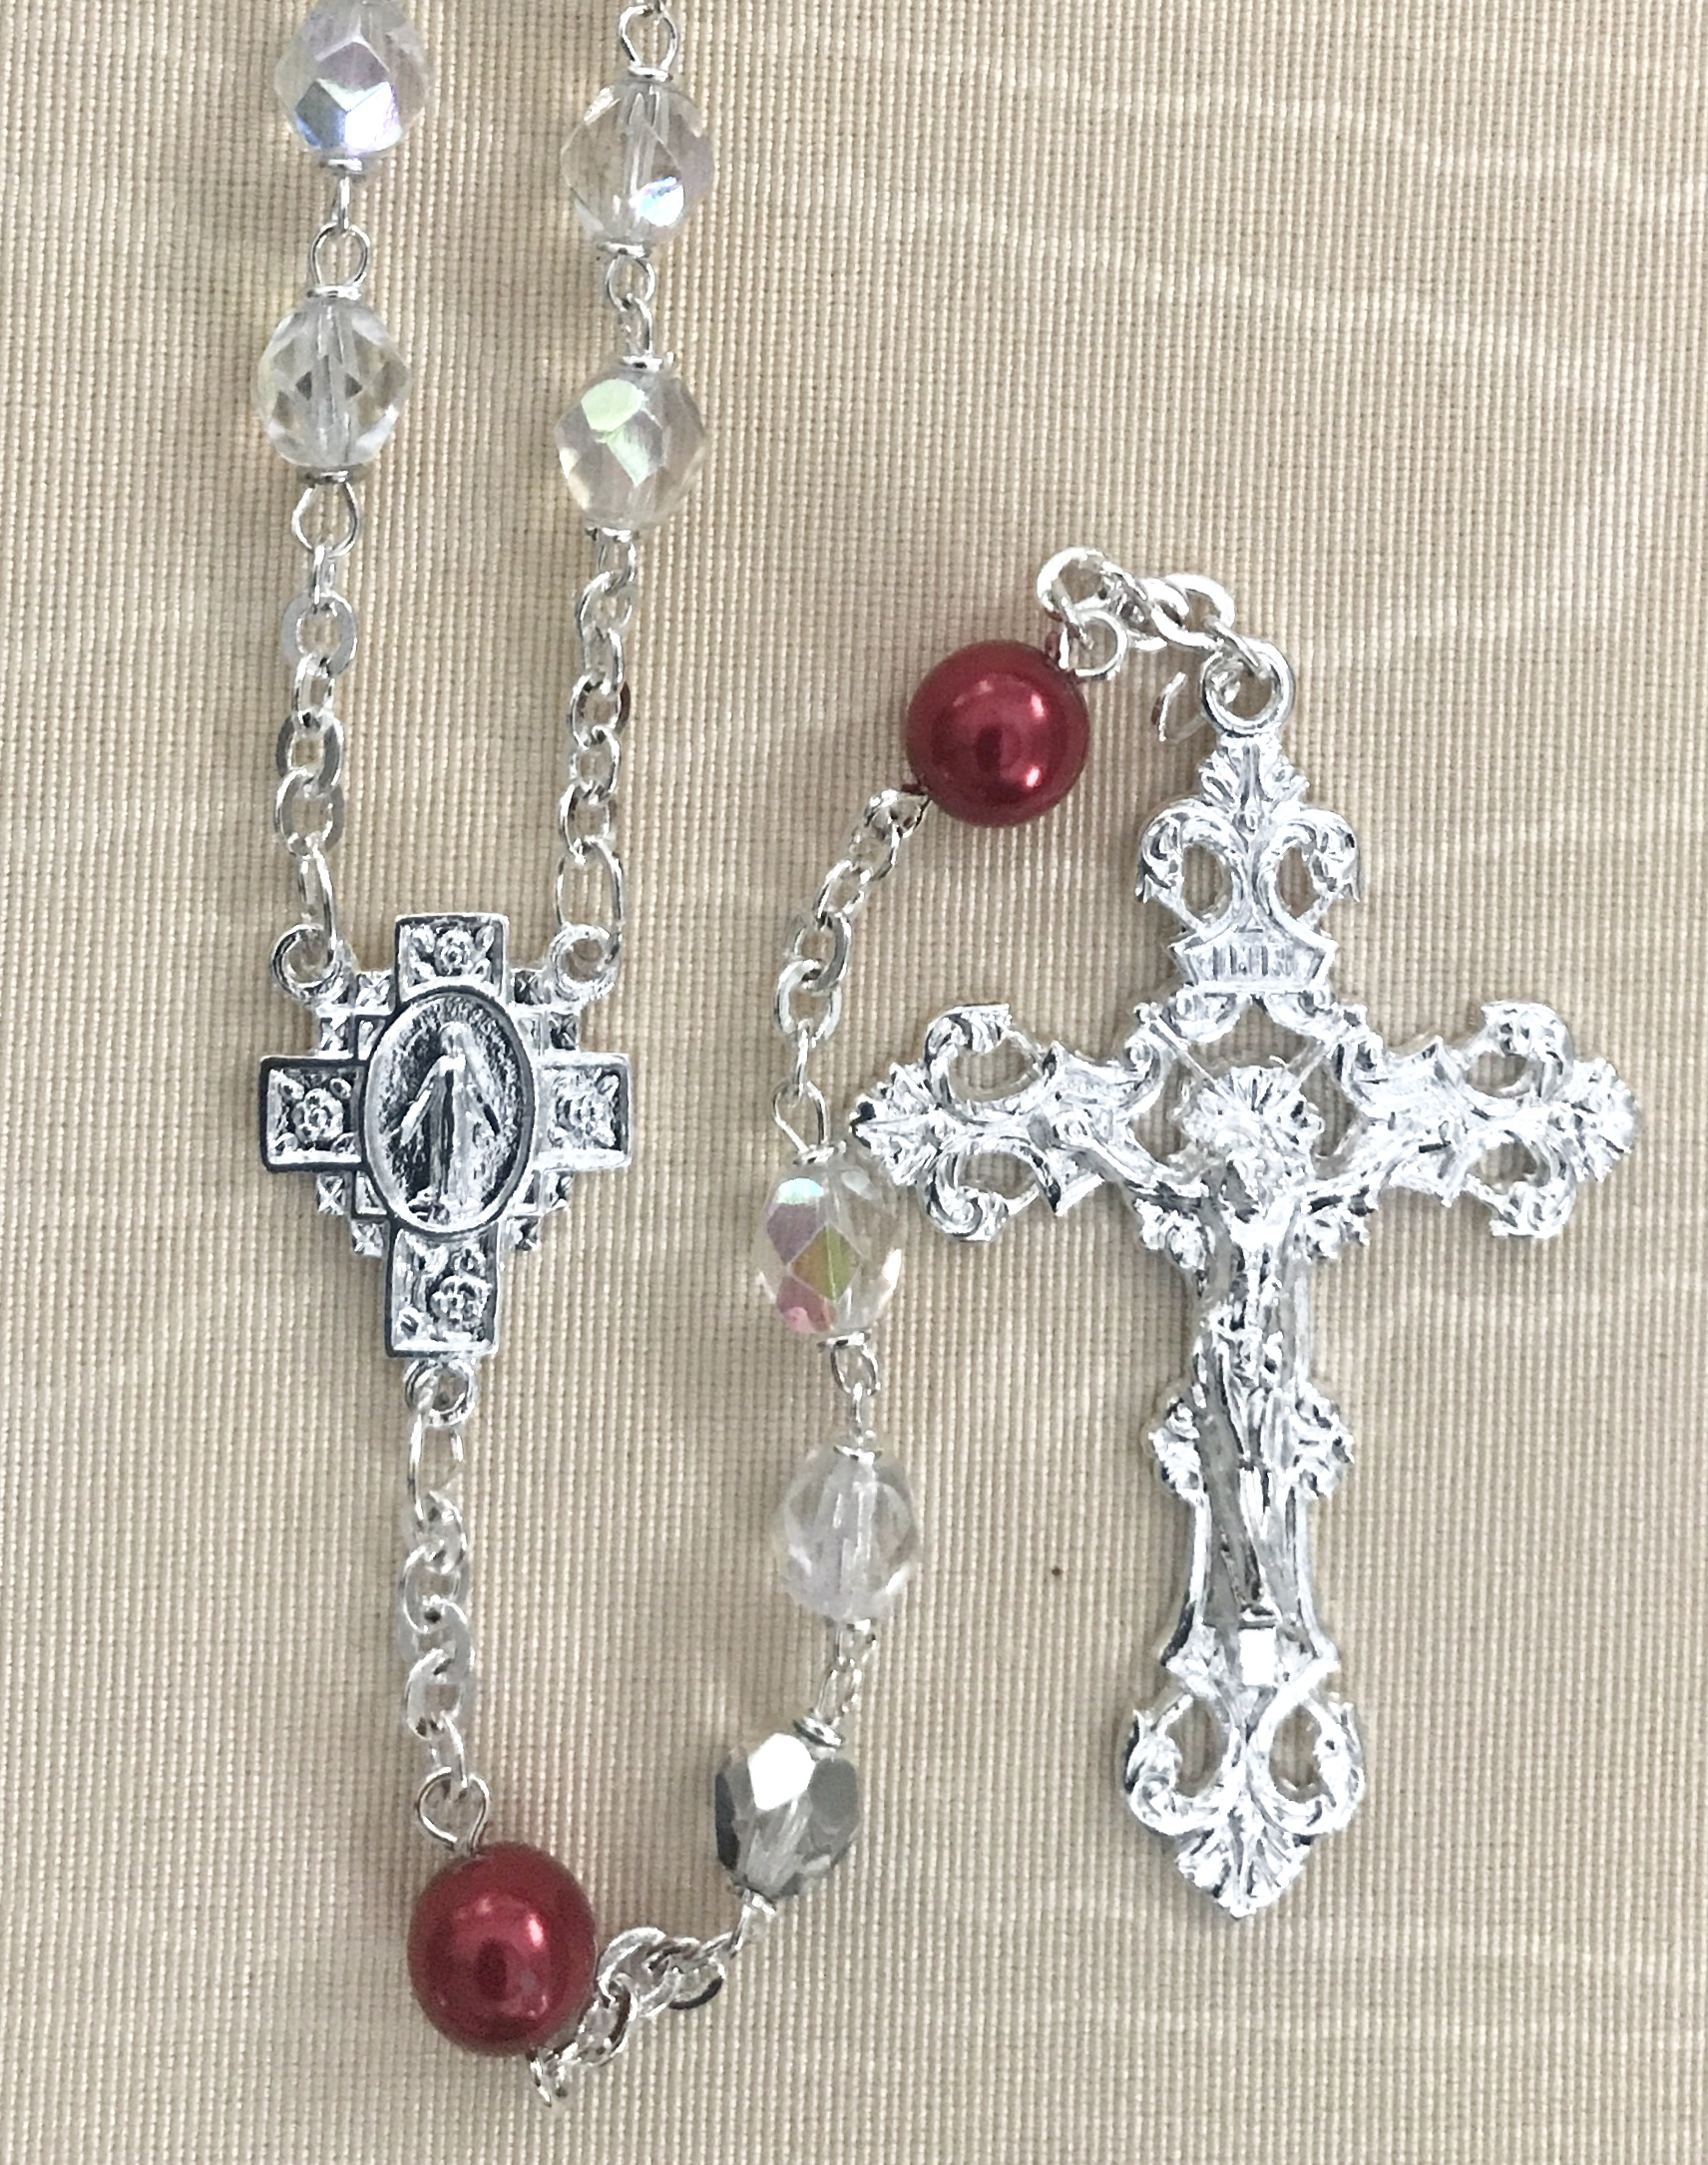 July 7mm CRYSTAL AB with RUBY PEARL OUR FATHER BEADS  S.S. PLATE LOC-LINK - GIFT BOXED